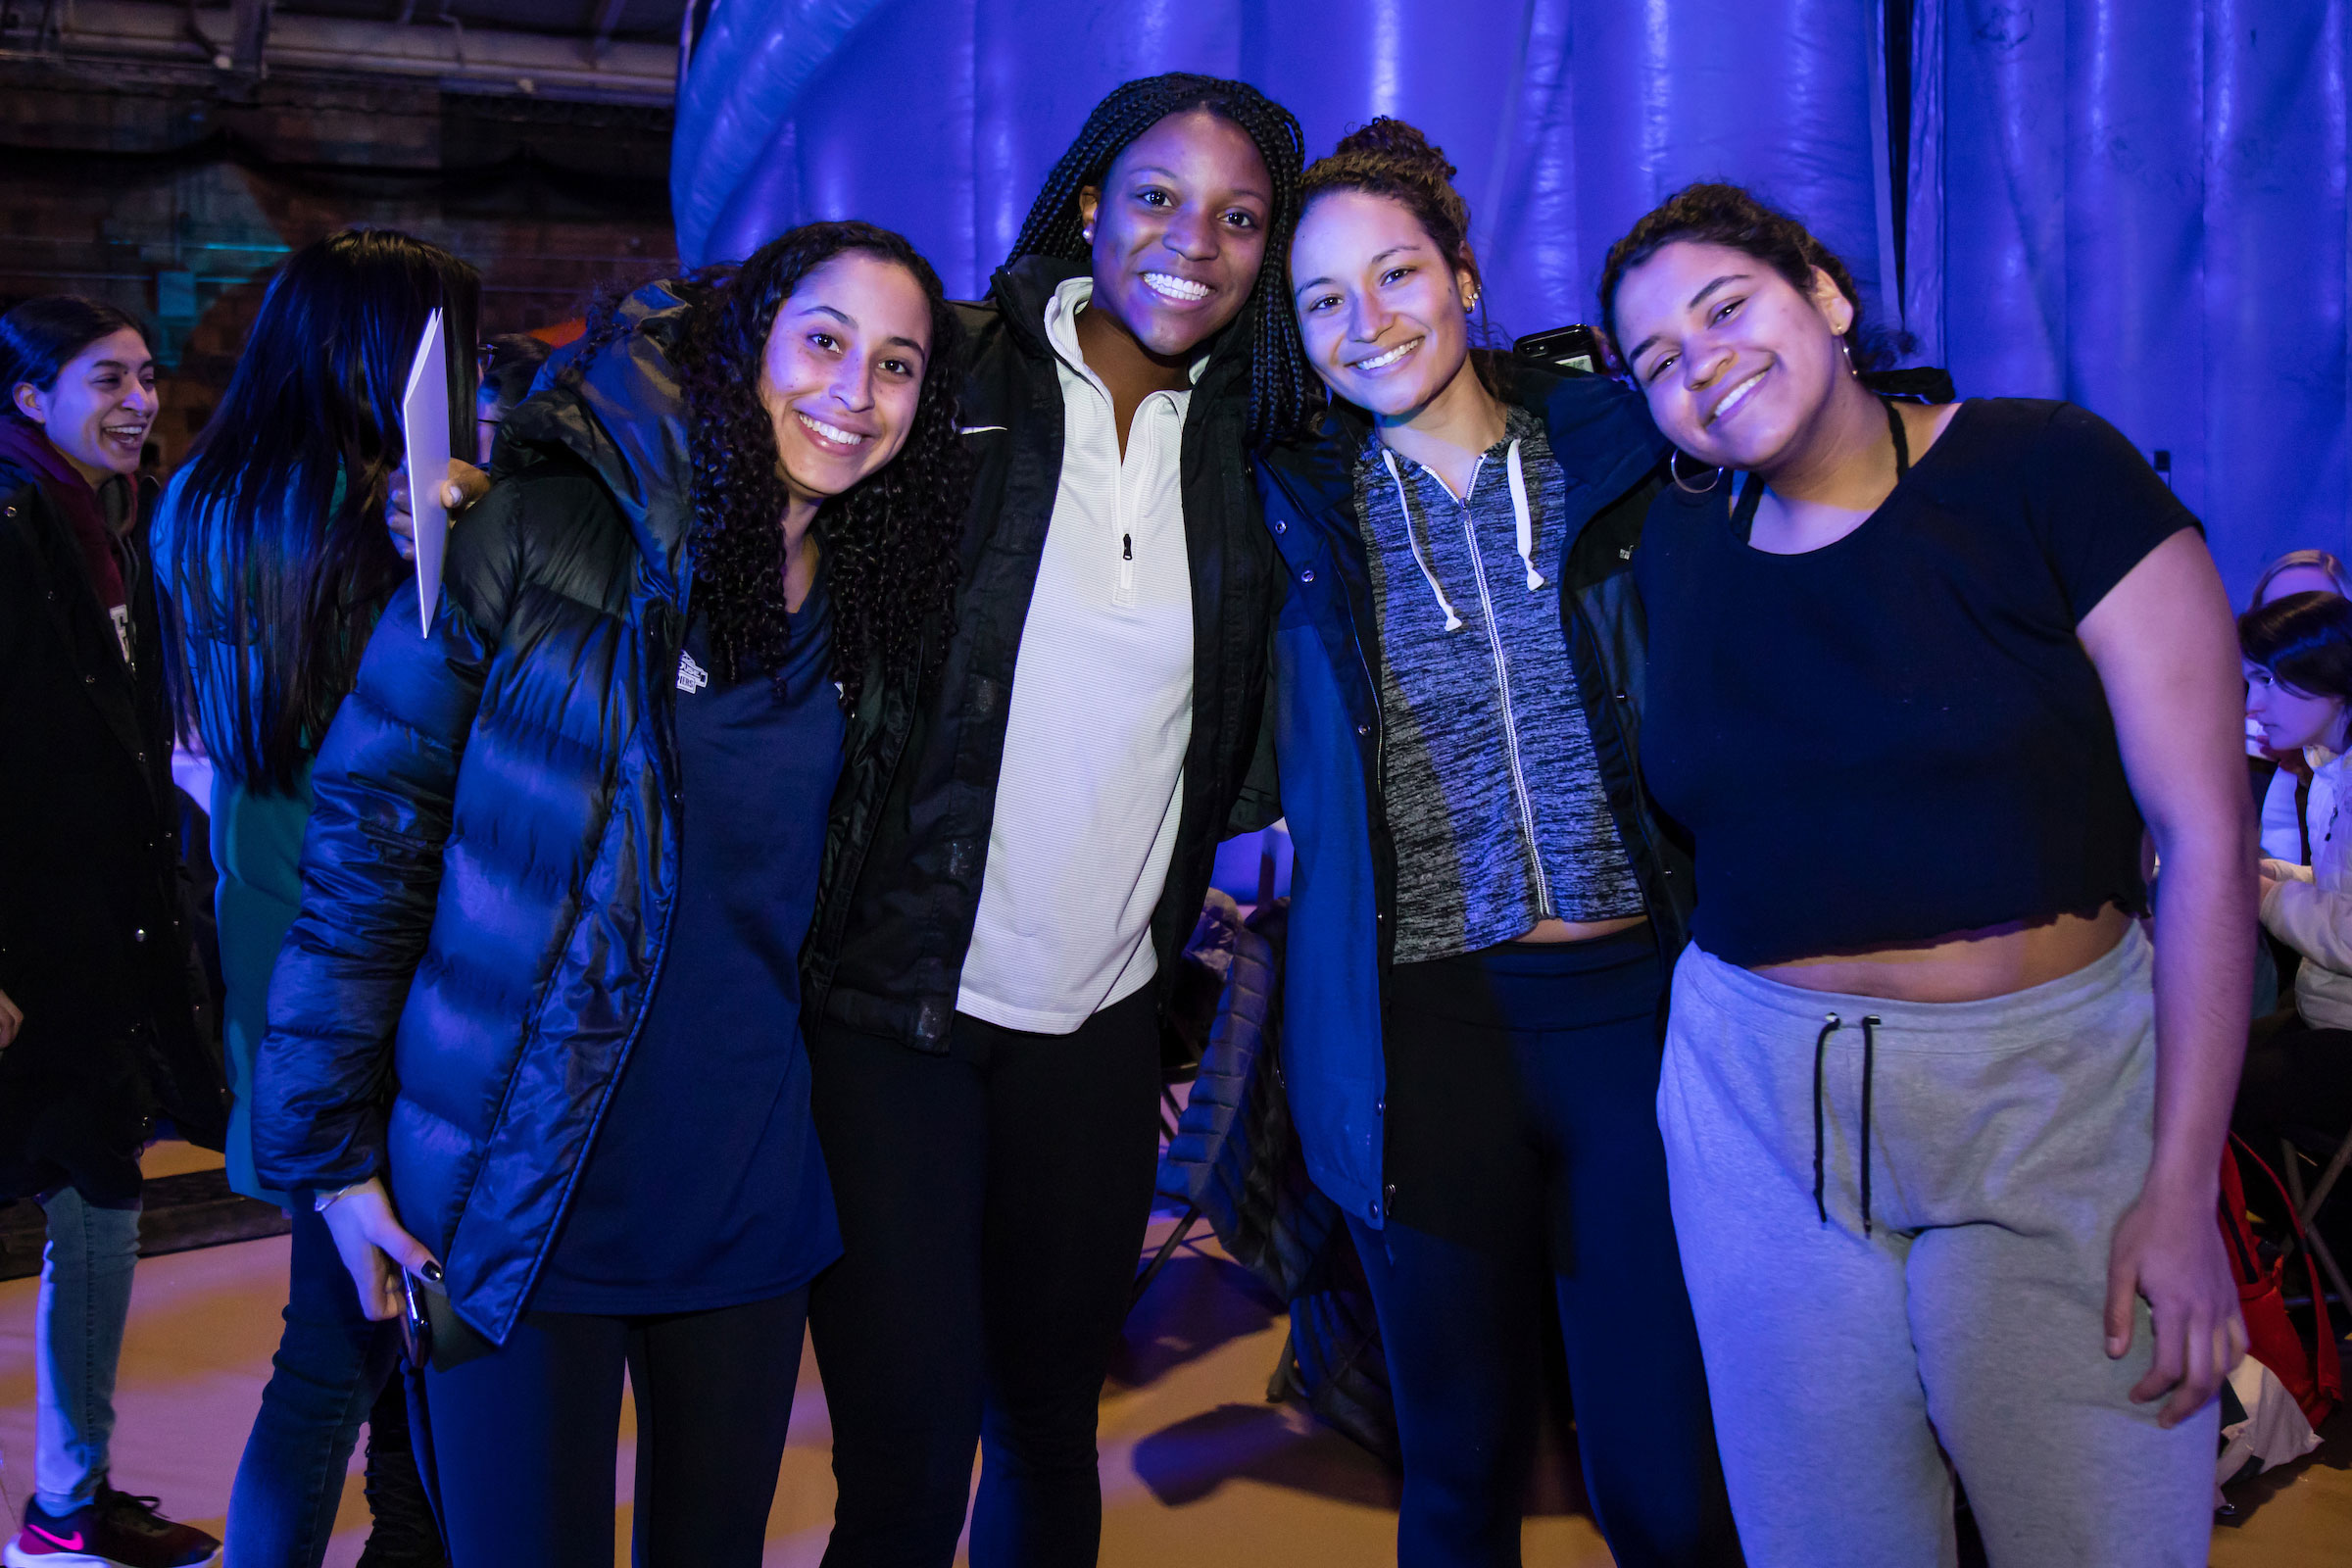 Four smiling women pose for the camera at Winter Fest